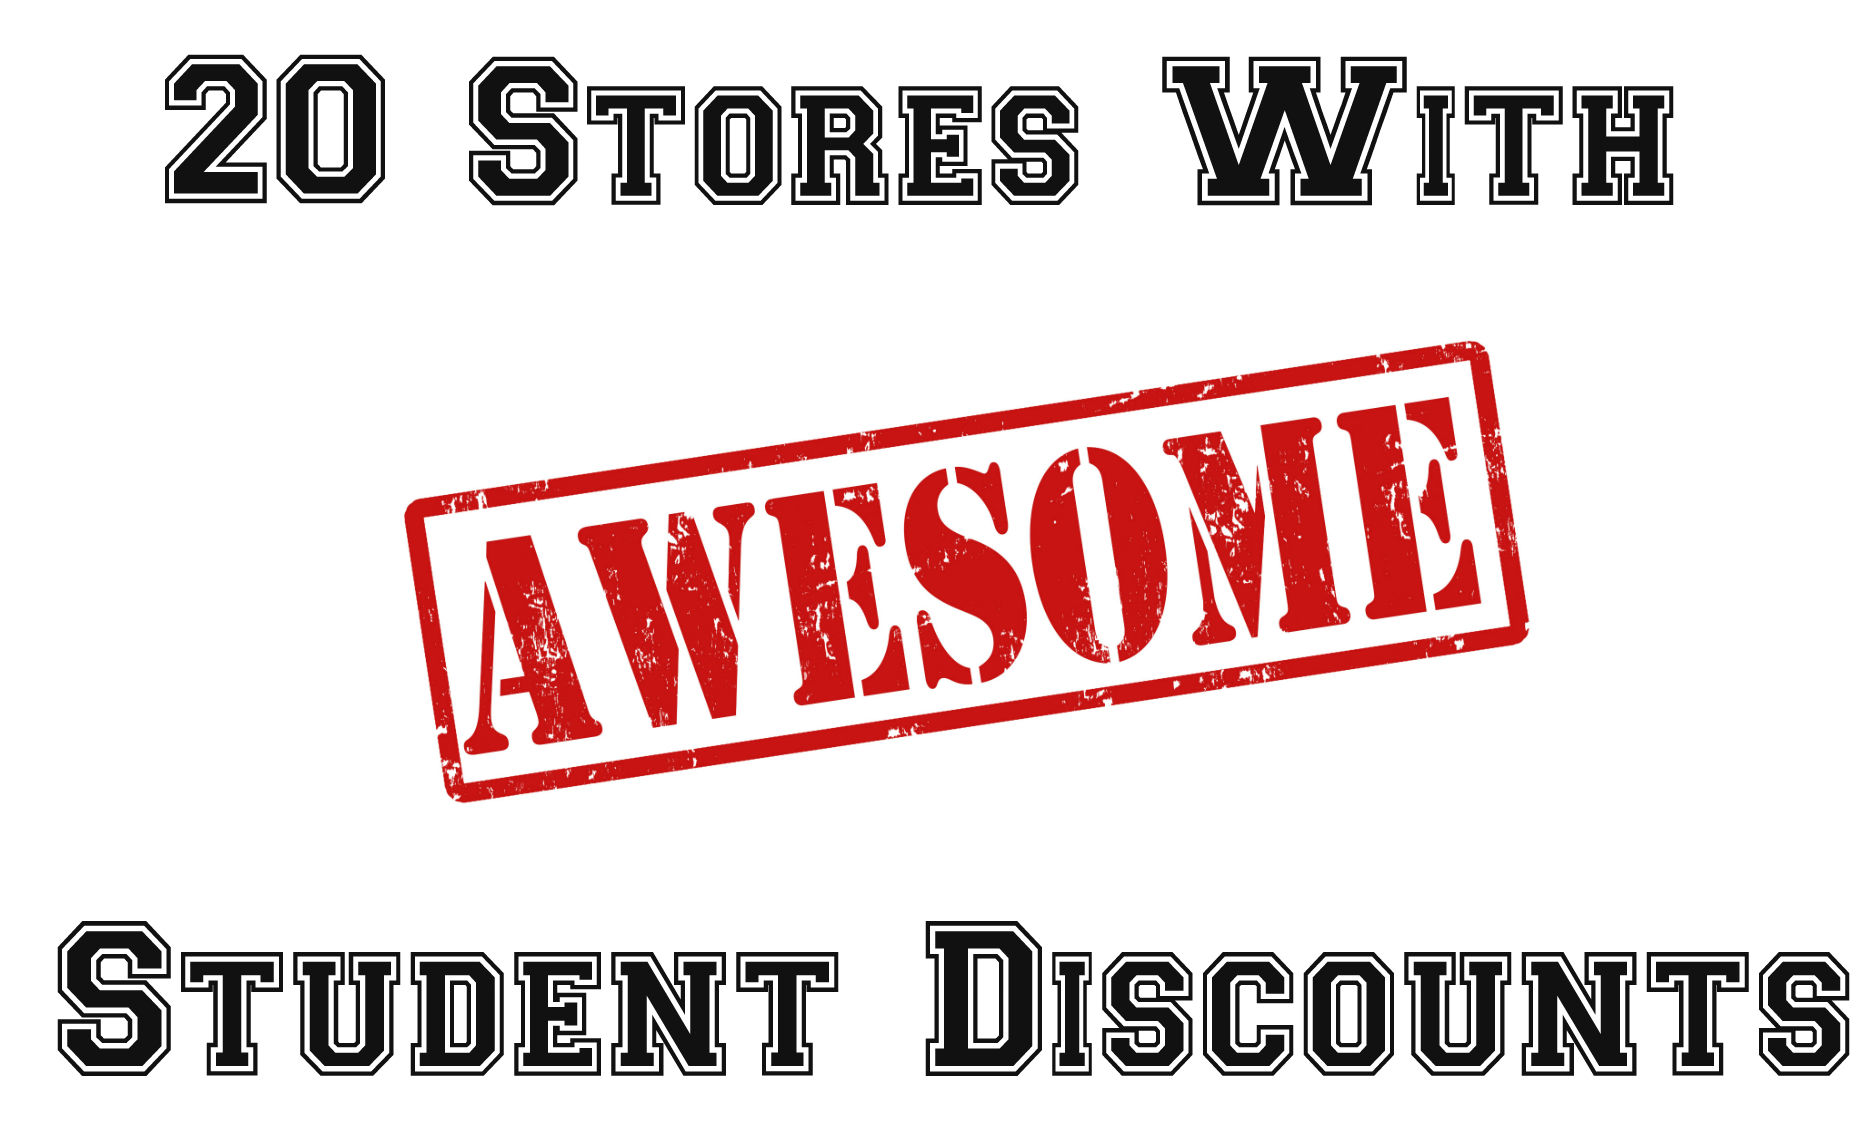 best student discounts, hidden student discounts, stores with student discounts